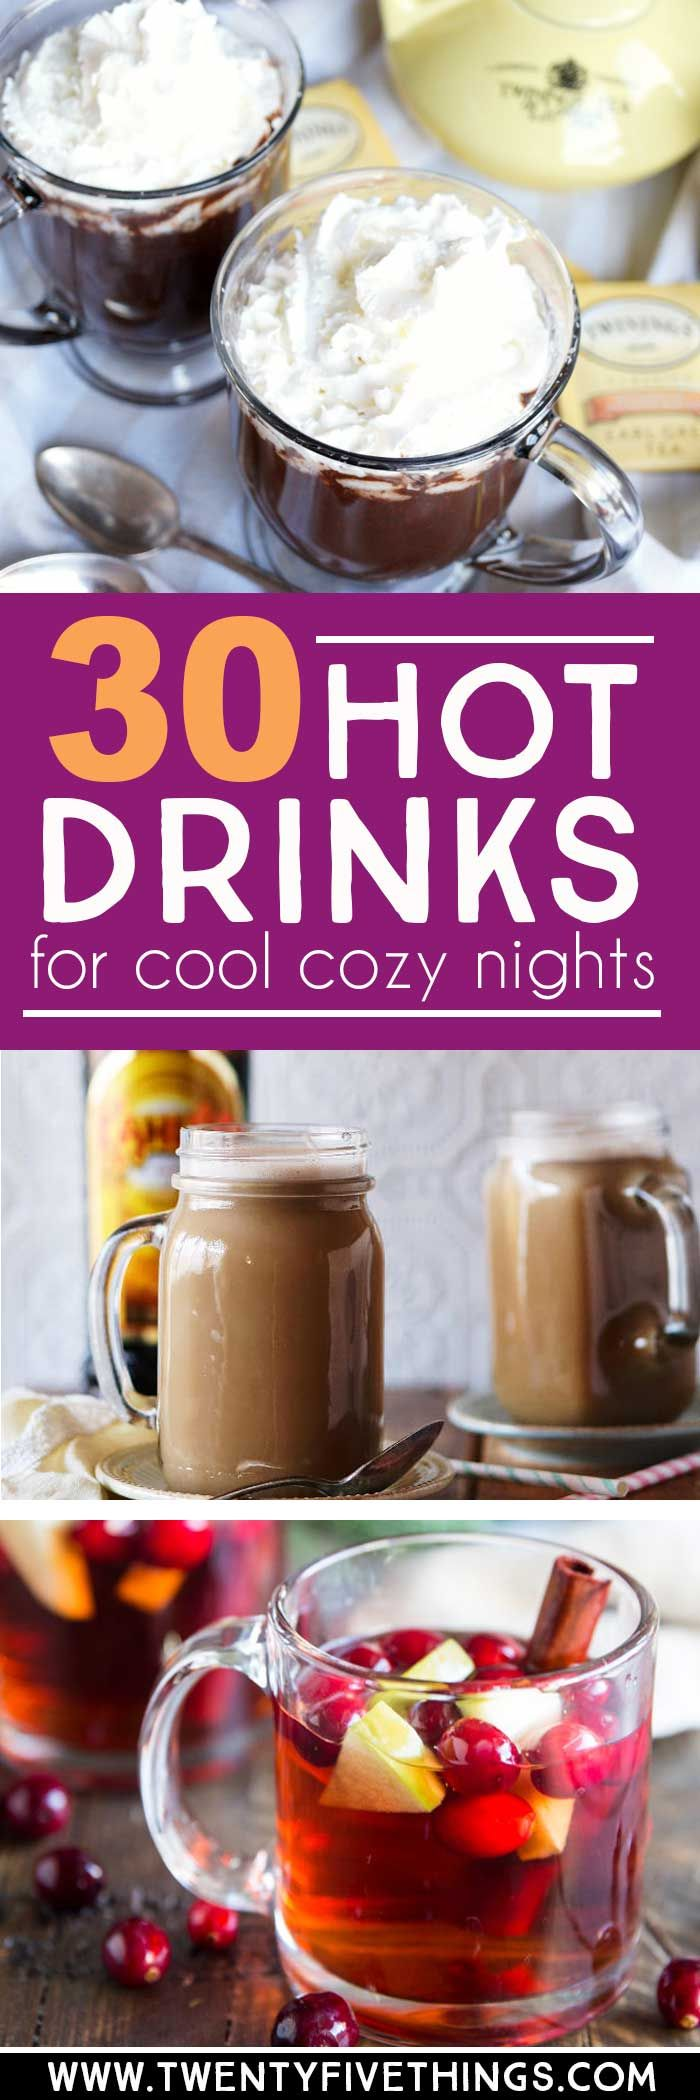 Hot drink recipes are here just in time for cool weather to set in. Choose one of these 30 hot drink recipes and cozy up with your favorite blanket tonight.